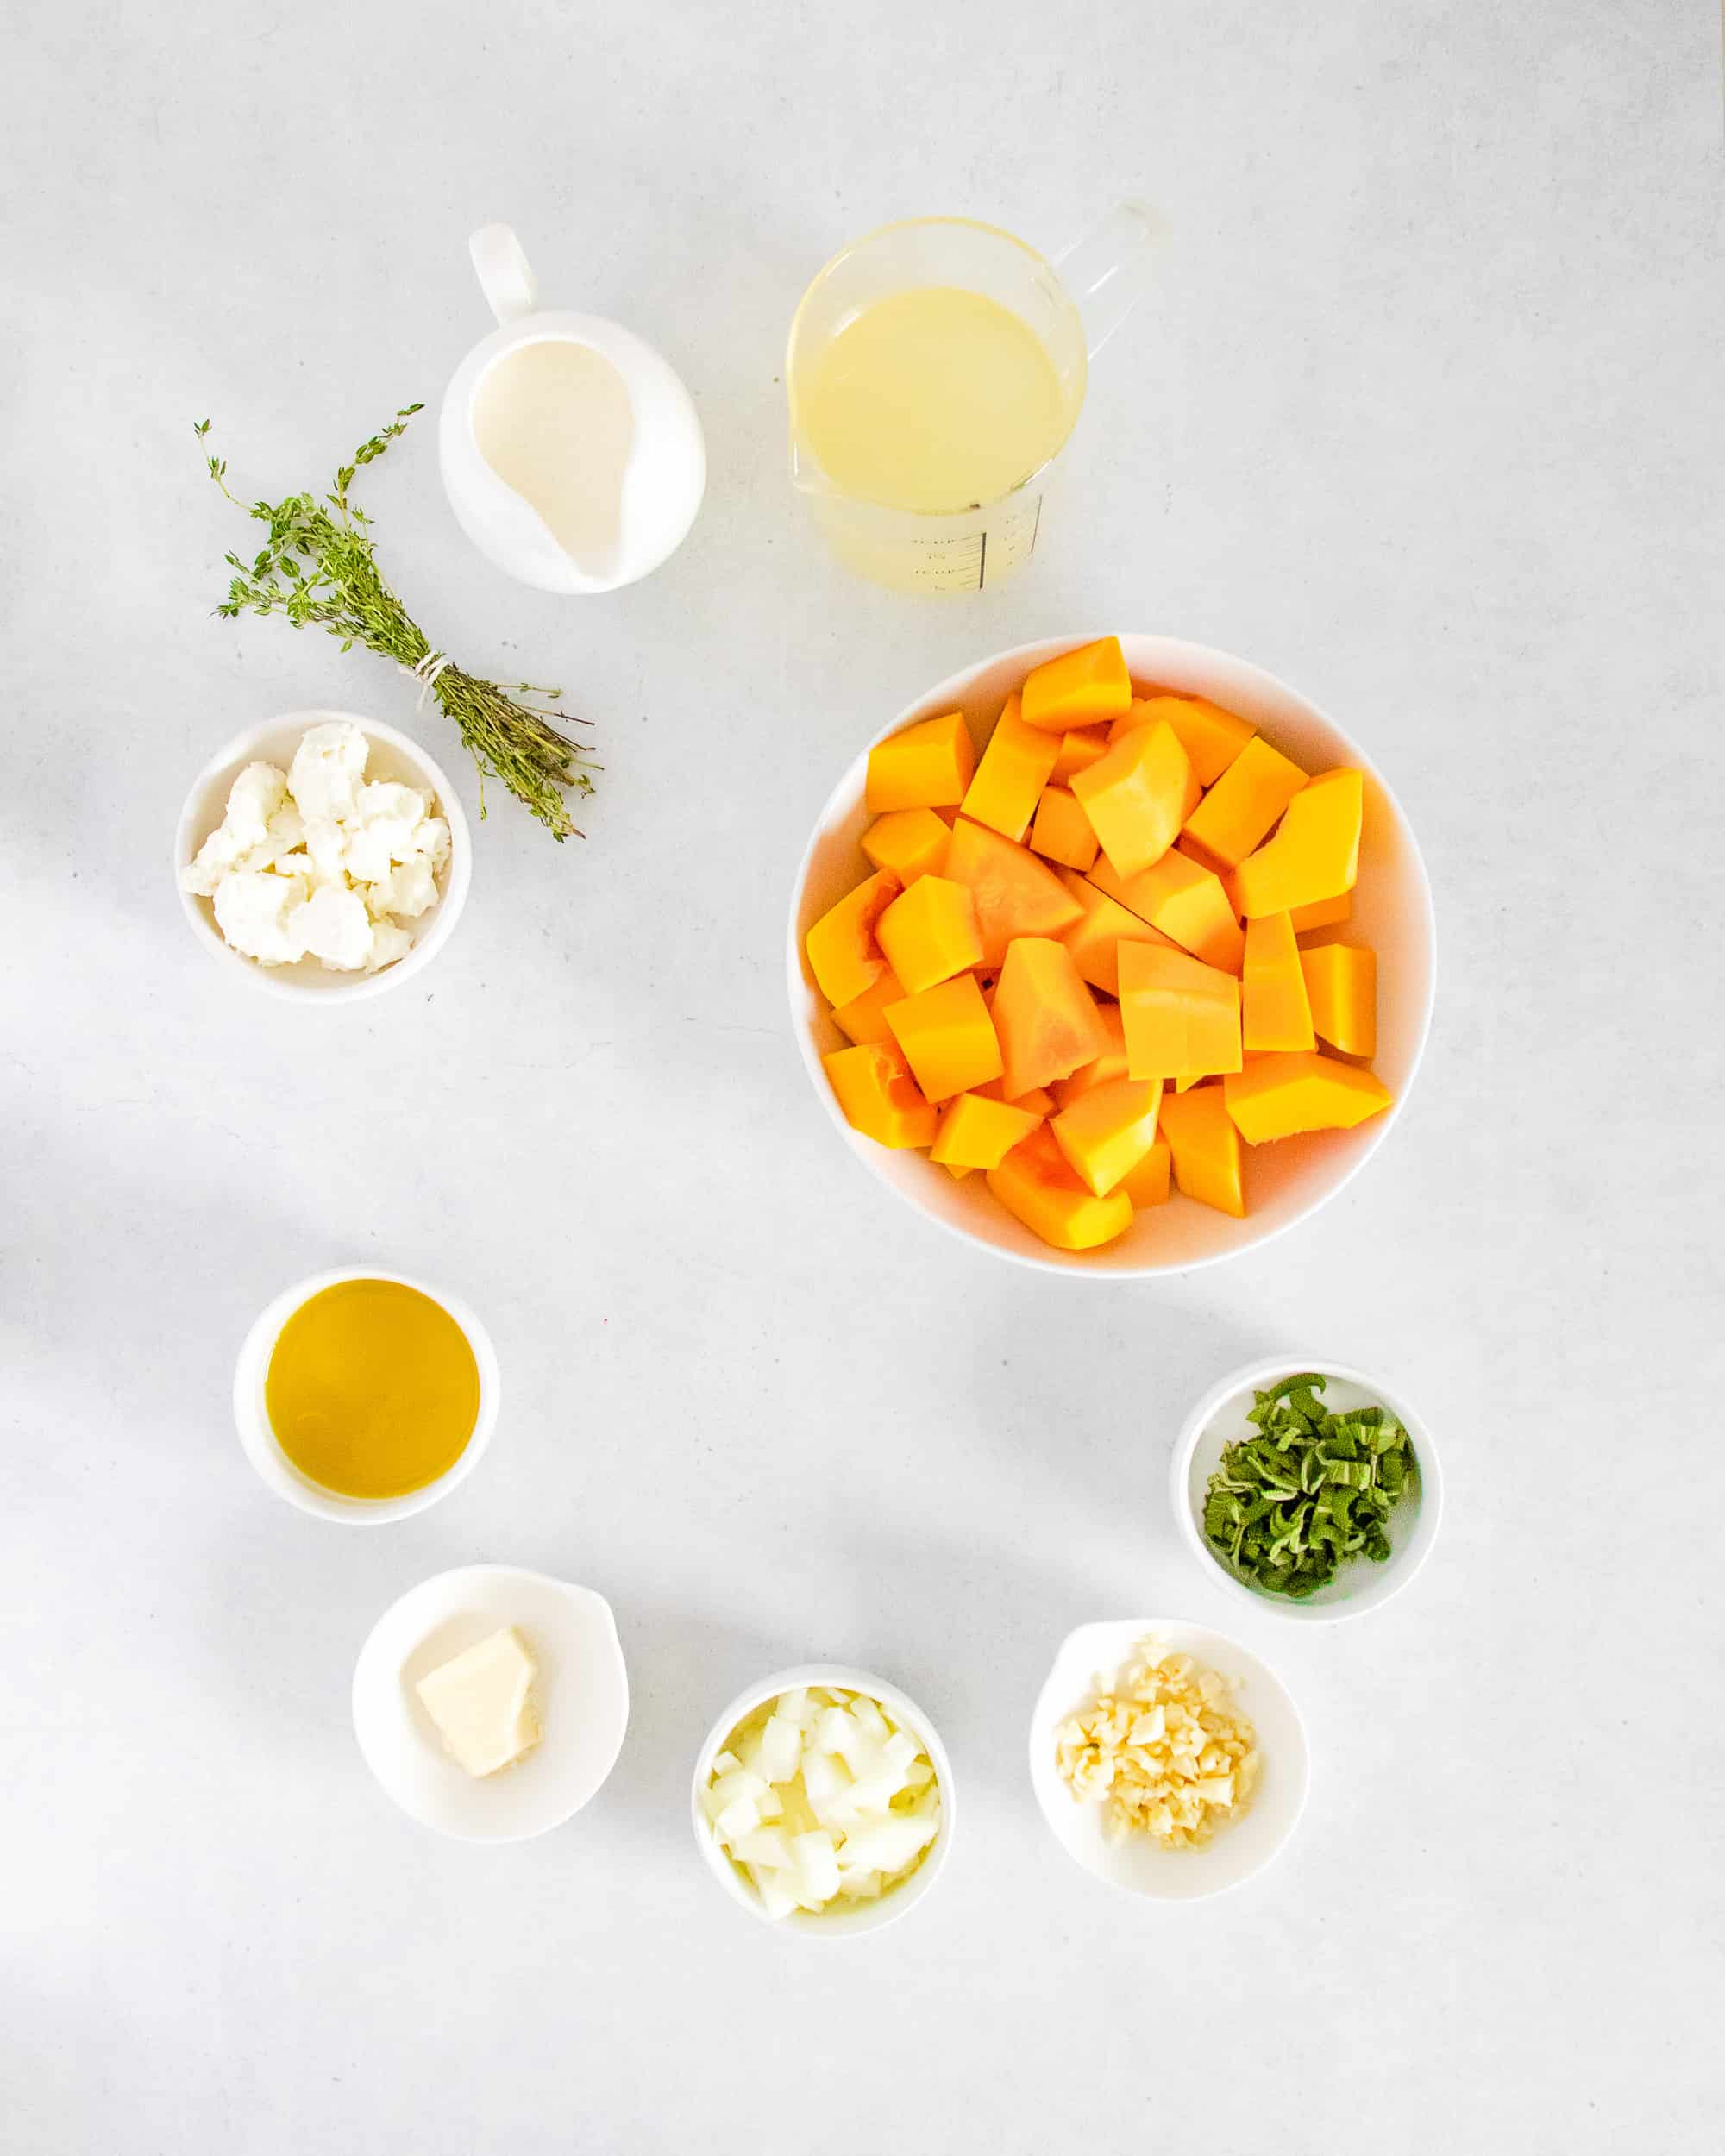 Instant Pot Butternut Squash Soup ingredients in bowls